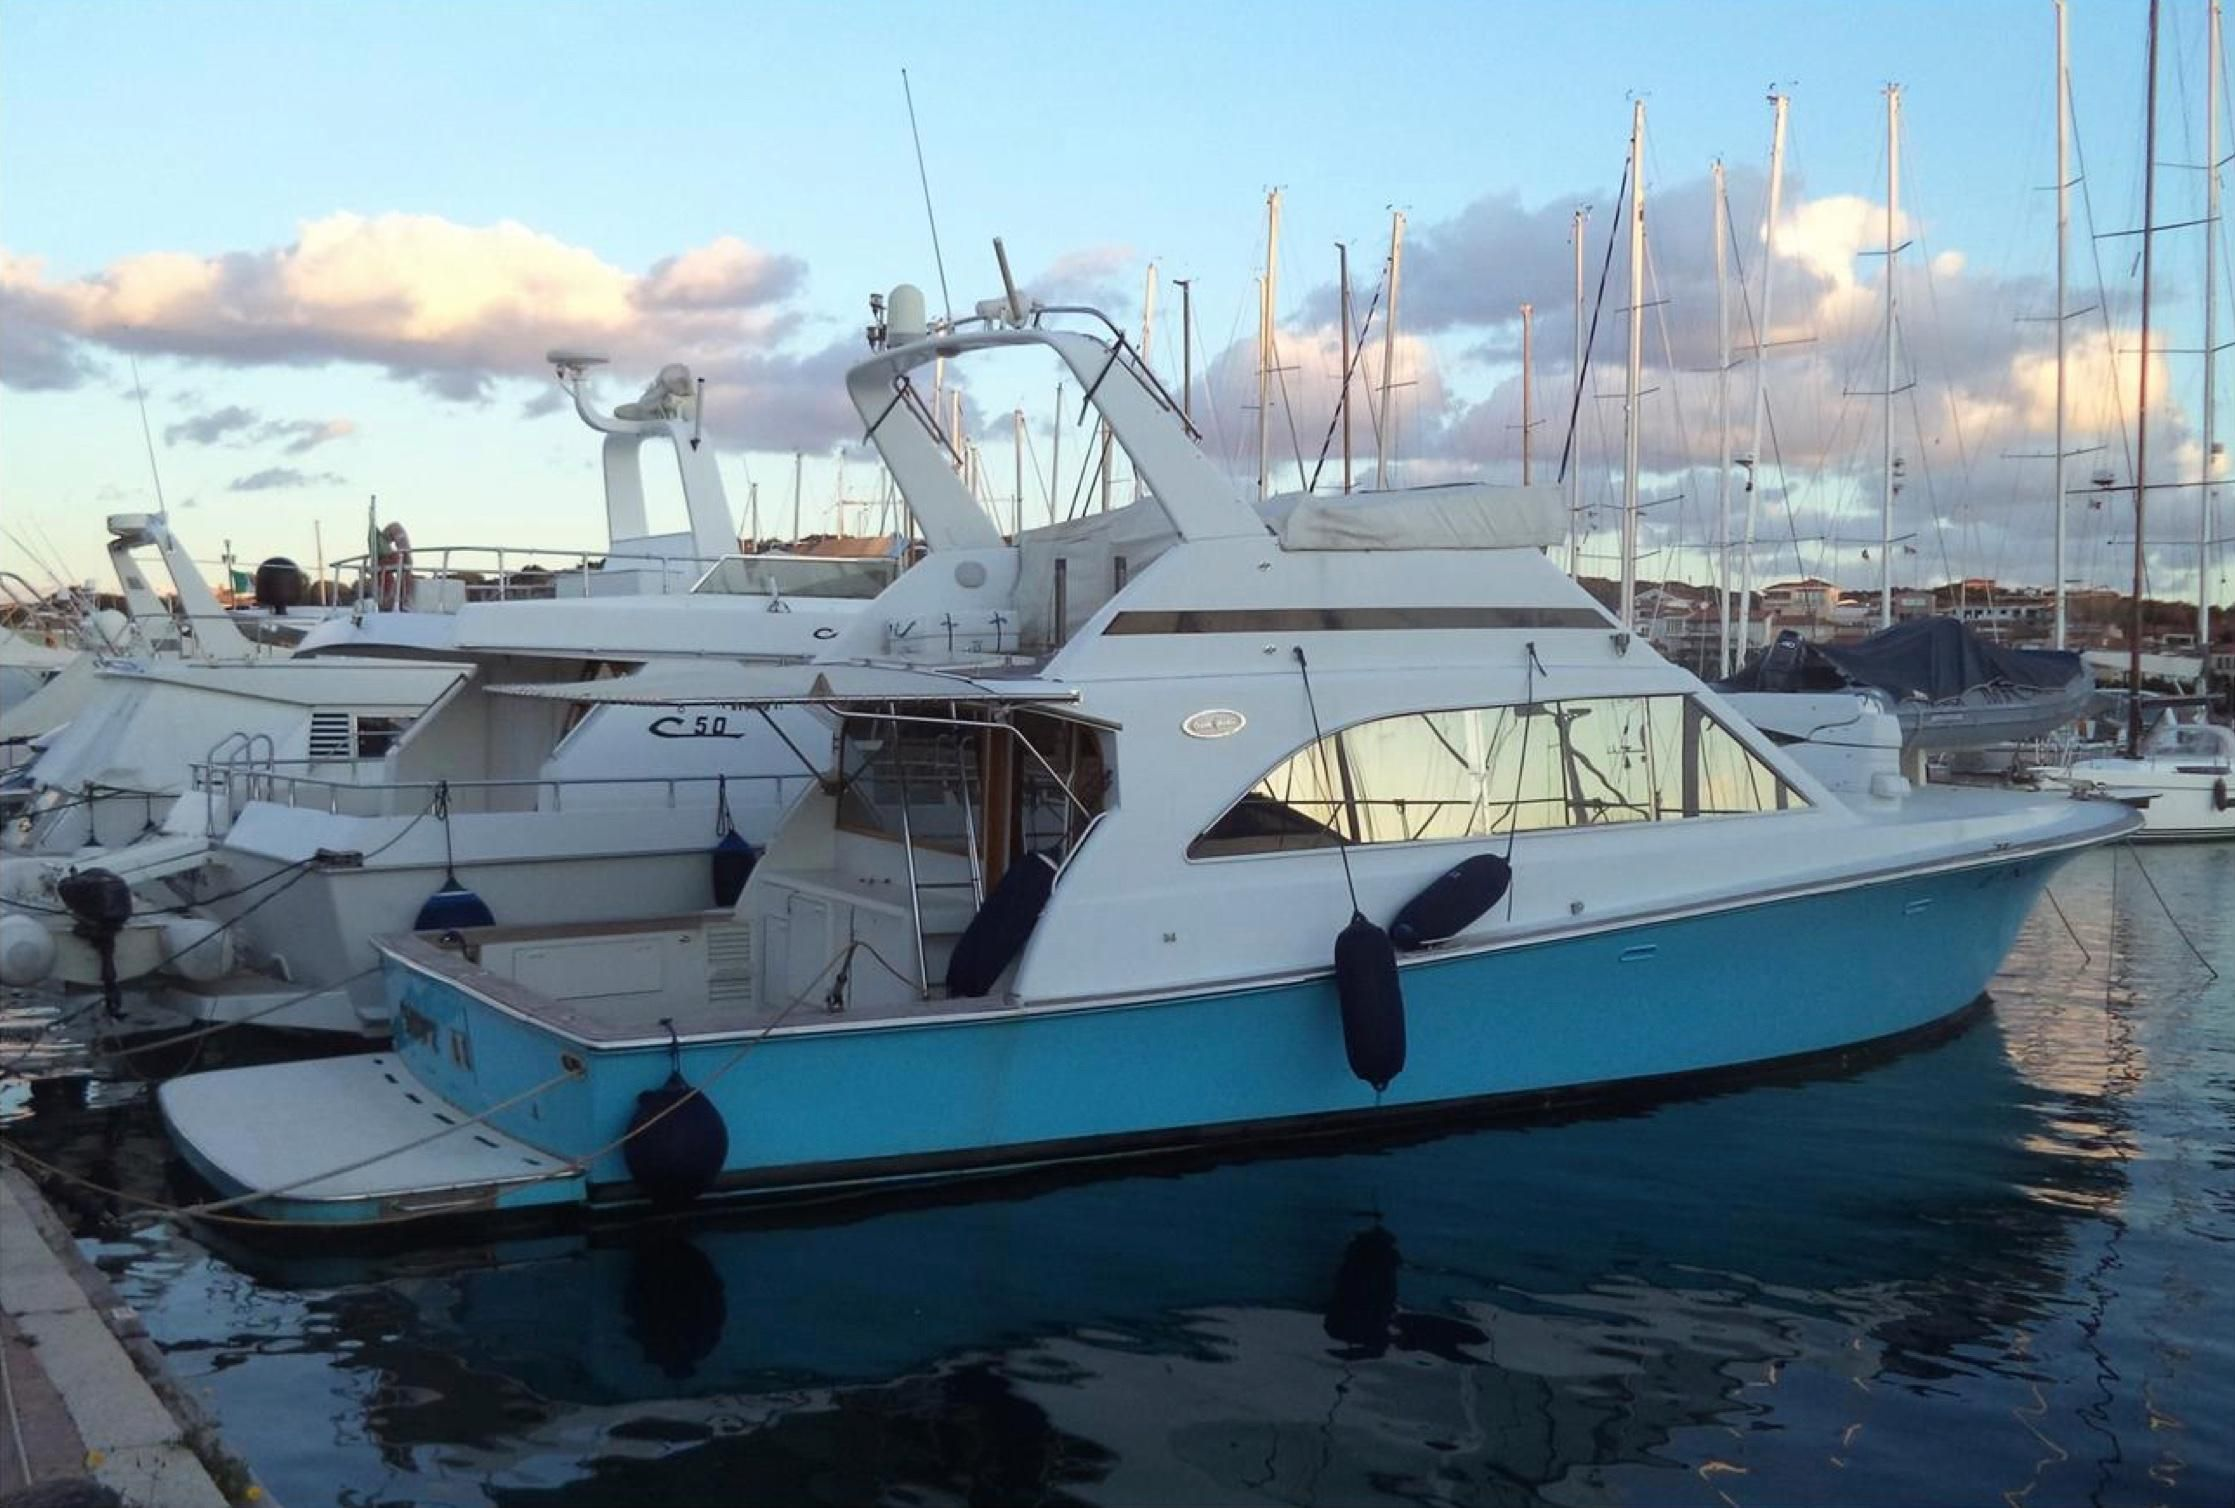 2001 ocean yachts super sport power boat for sale www for Ocean yachts 48 motor yacht for sale